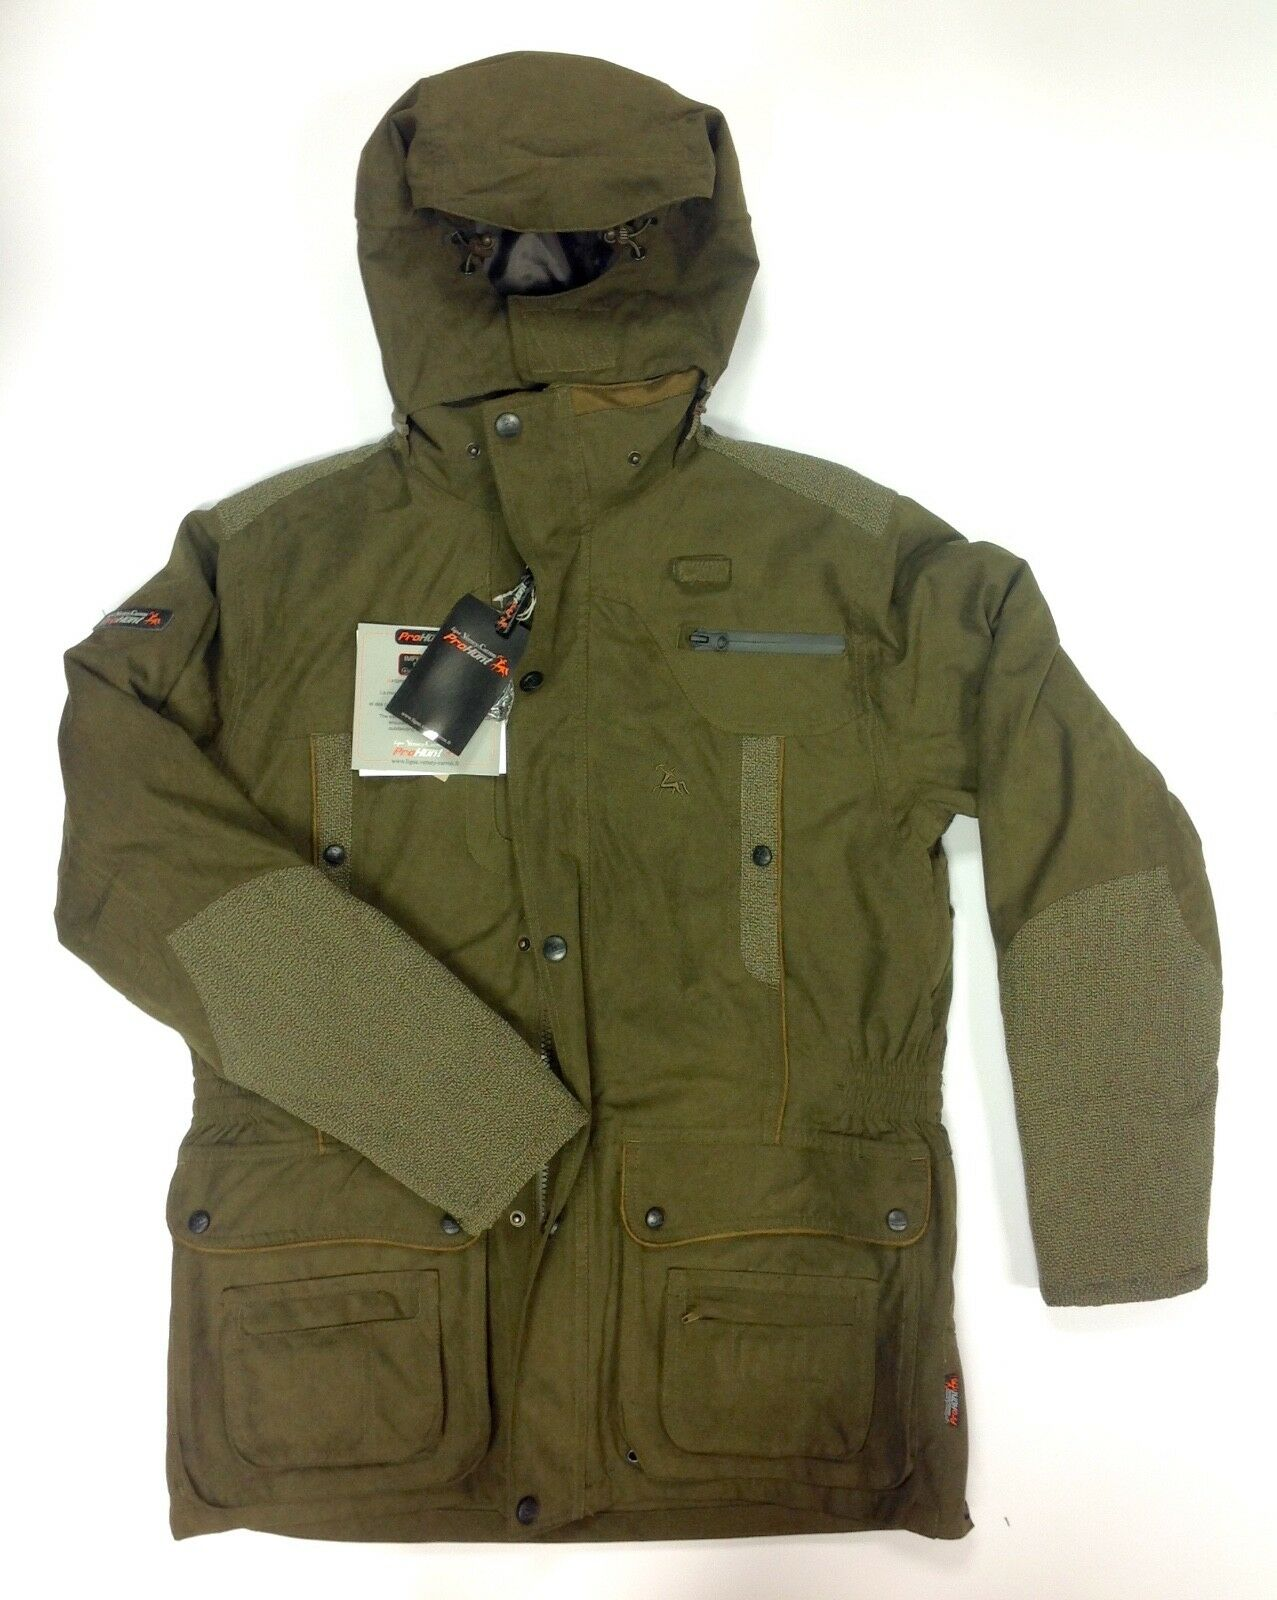 Pro Hunt Verney  Cocheron Ibex Jacket Aguaproof Hunting Shooting Fishing Country  descuentos y mas